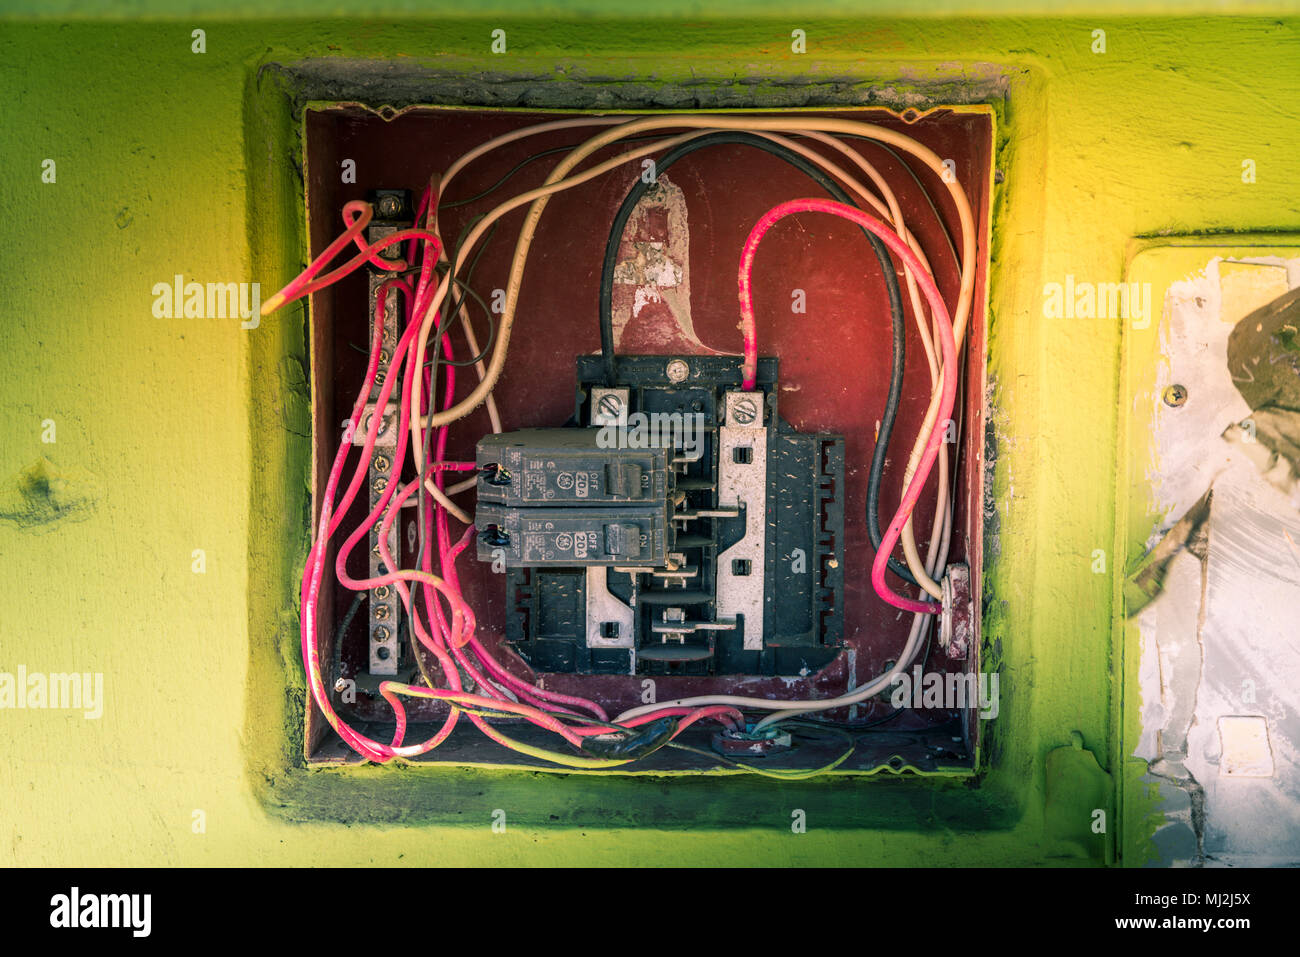 Breaker Box Stock Photos Images Alamy The Wires From Old Switch Depending On Type Of Open Beaker Image